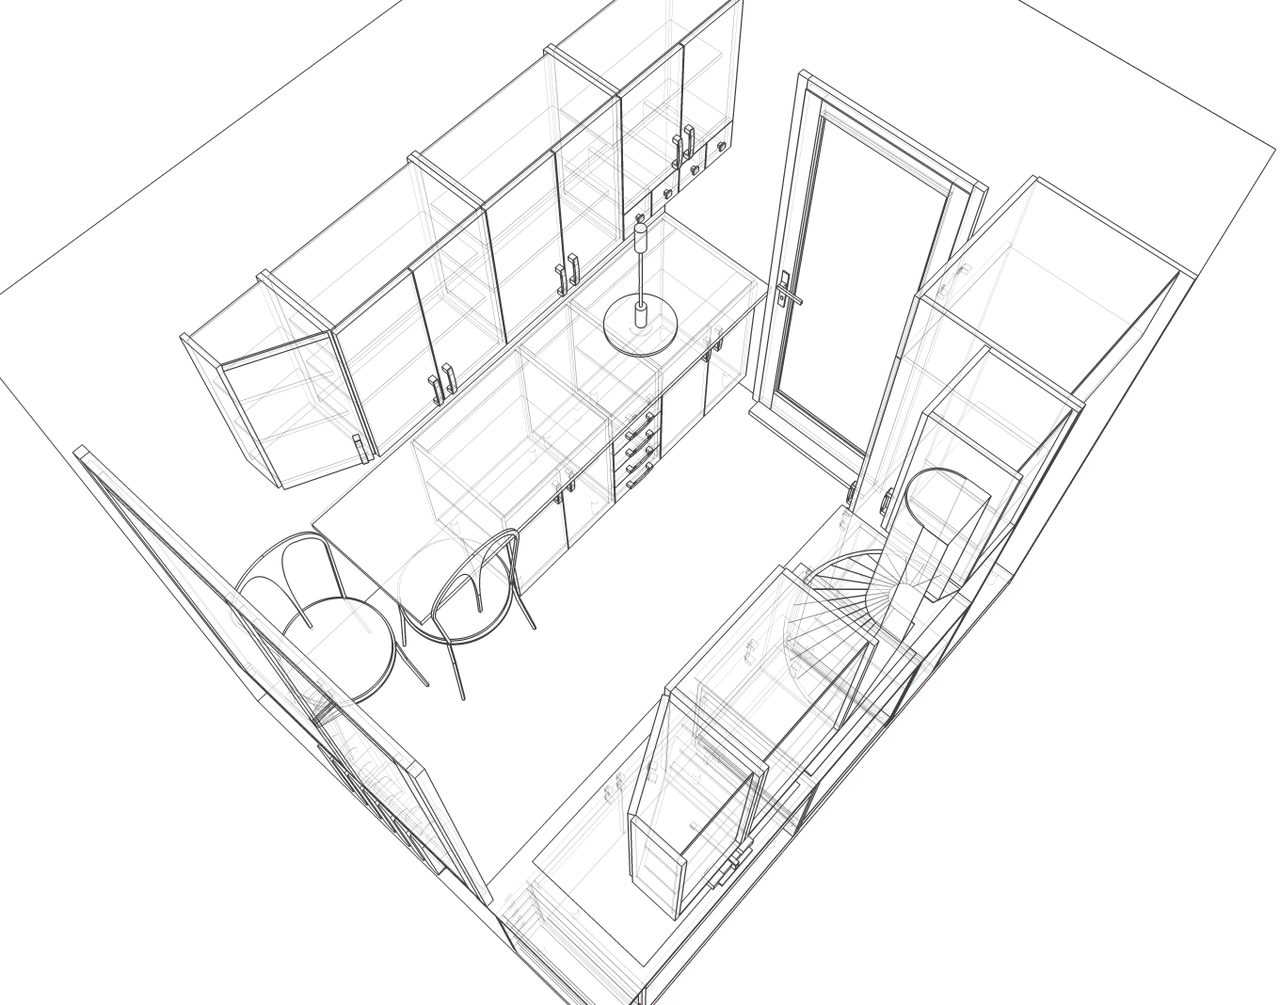 Kitchen perspective drawing - File Small Kitchen 2 Perspective Sketch Png